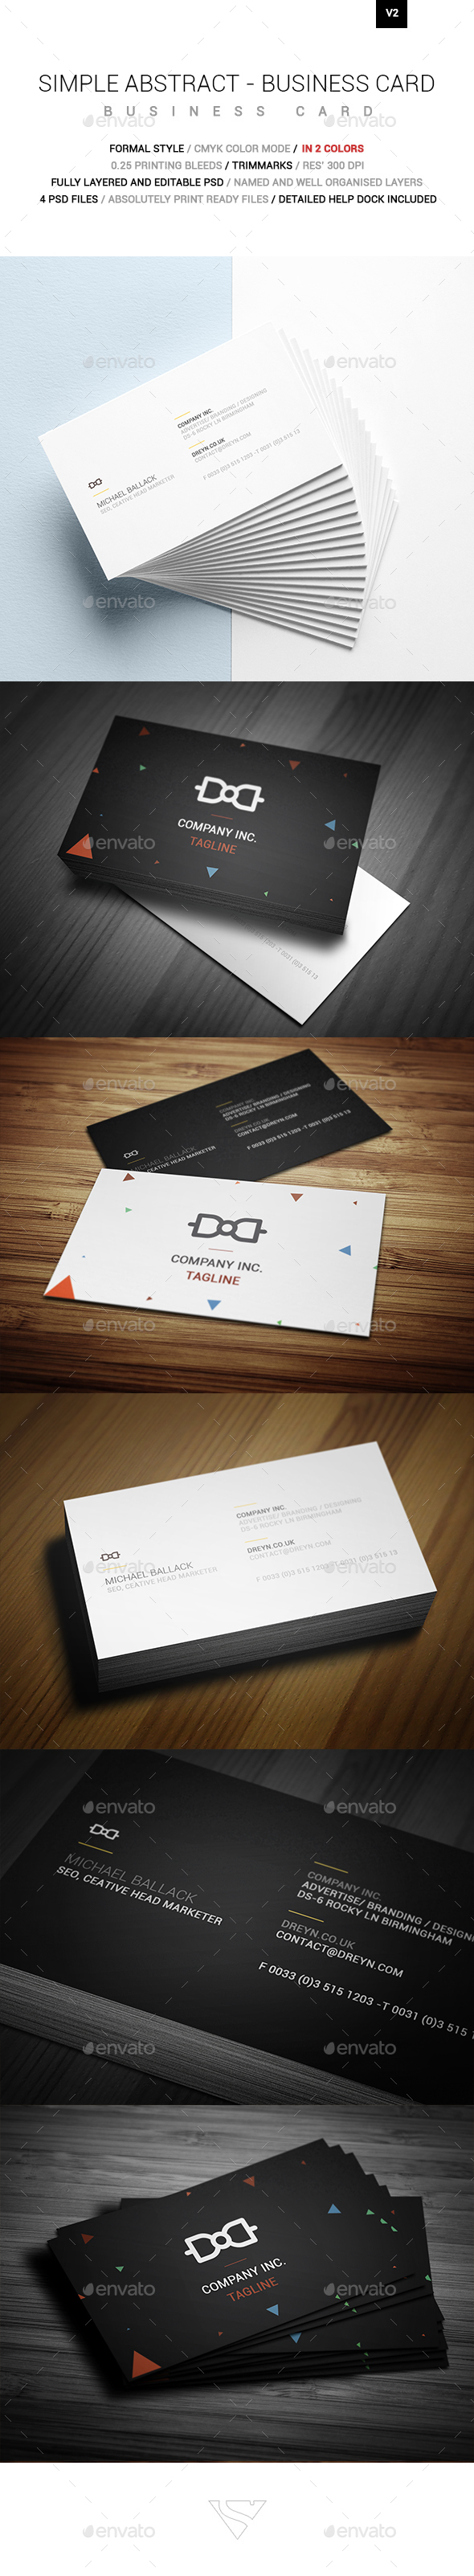 Simple Absract Business Card - Creative Business Cards